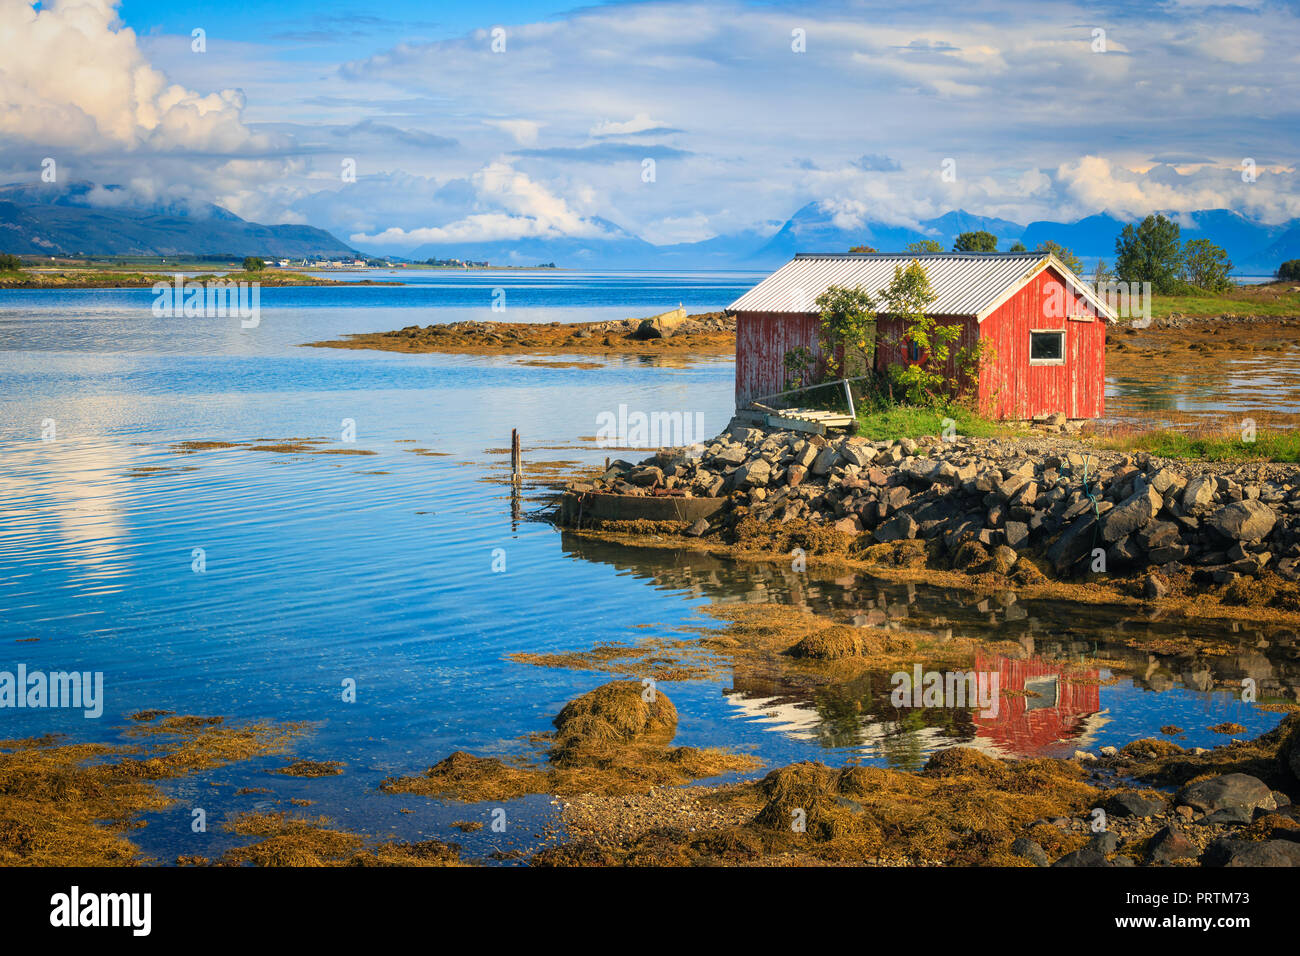 Lofoten, Norway - Stock Image